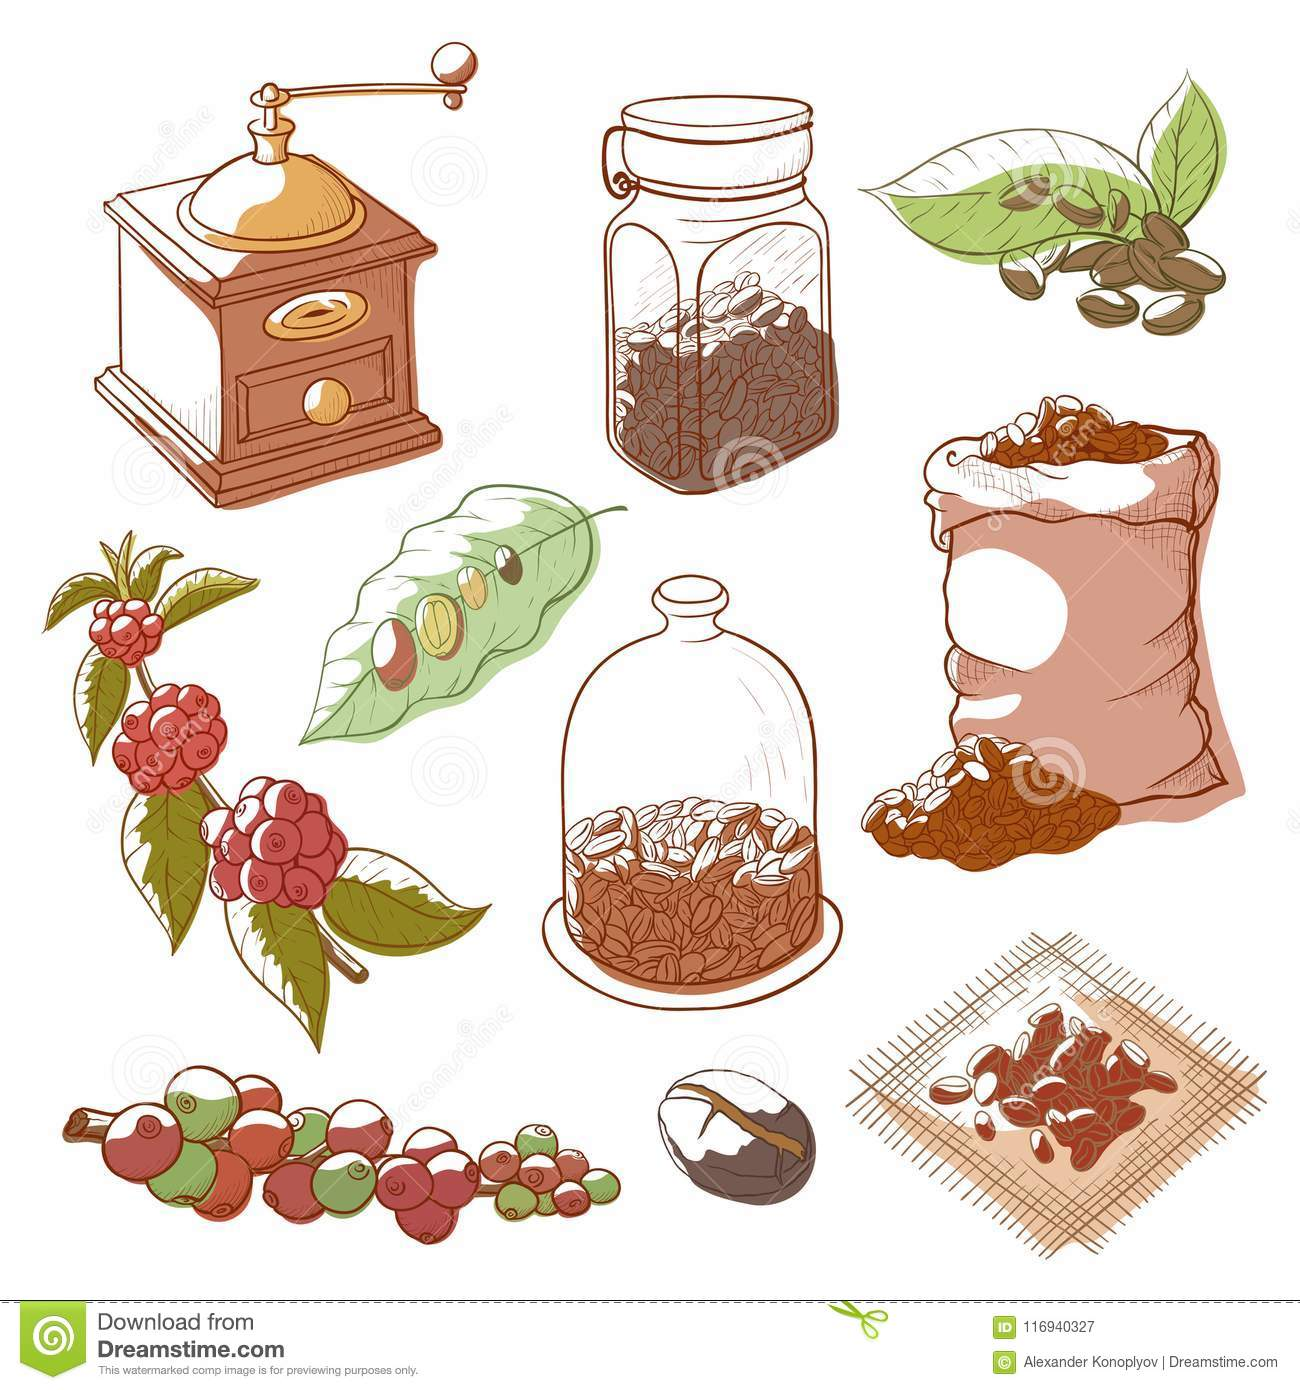 Coffee plant and beans stock vector. Illustration of ...